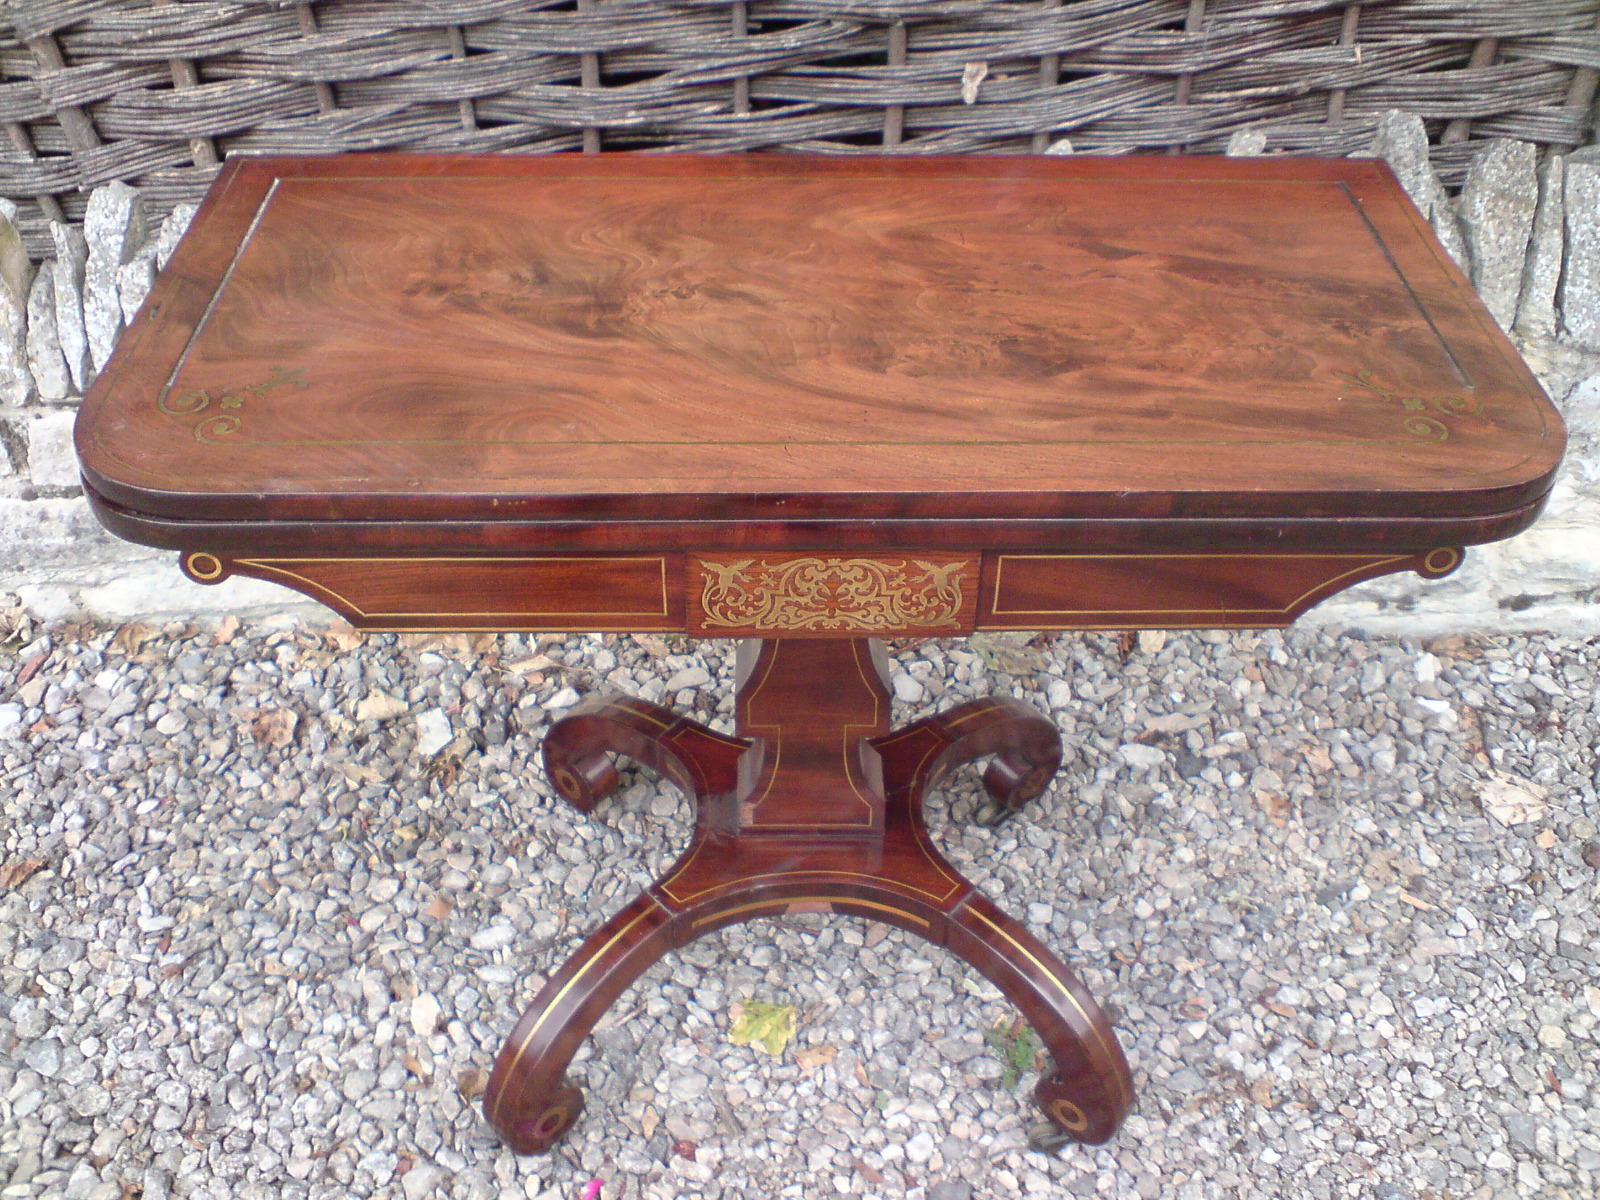 Antique card table regency card table inlaid card table antique - Regency Mahogany Antique Card Table